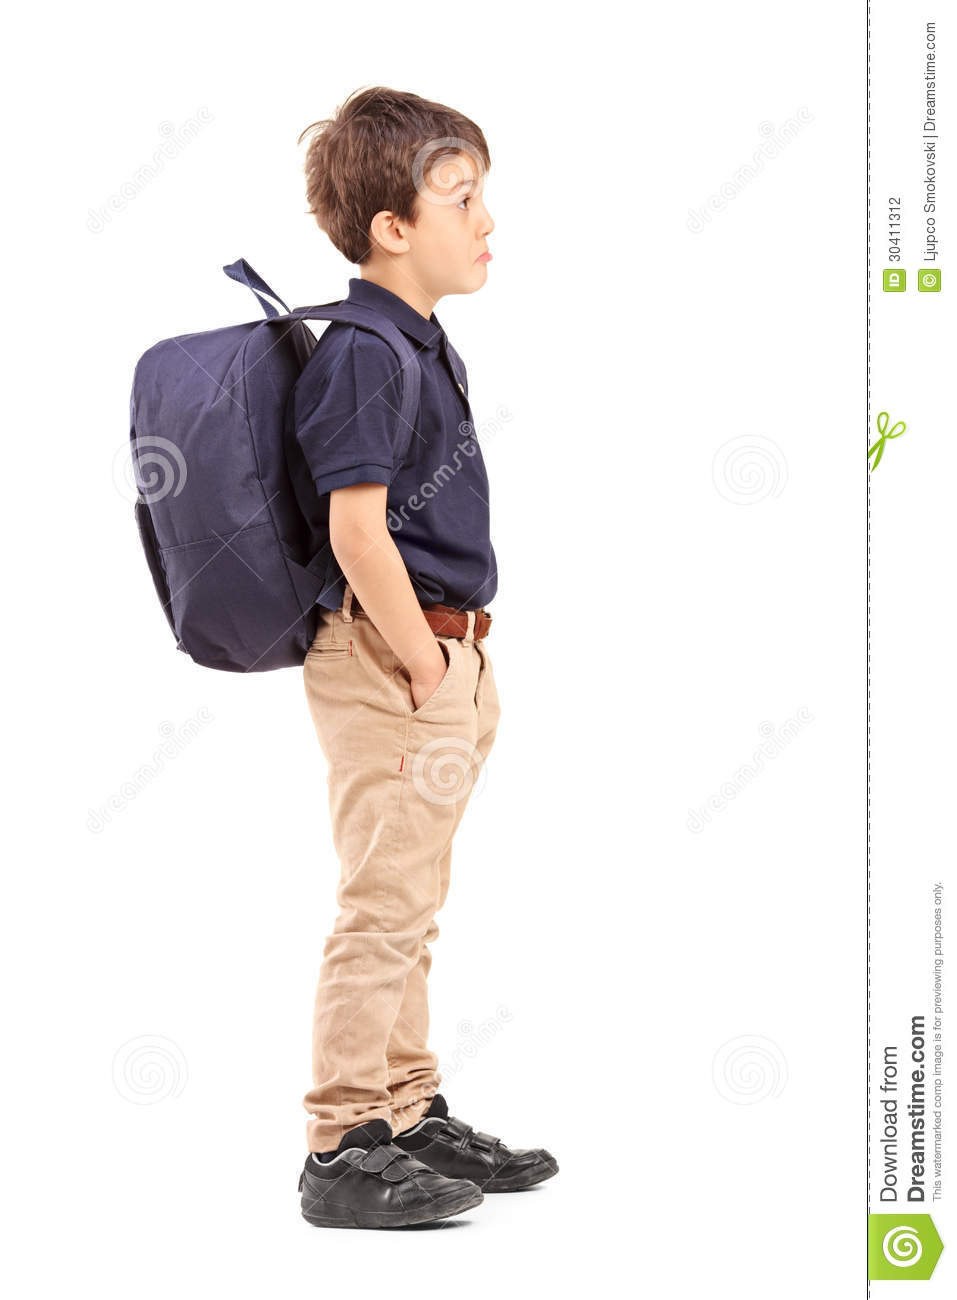 ... of a school boy with backpack standing, isolated on white background